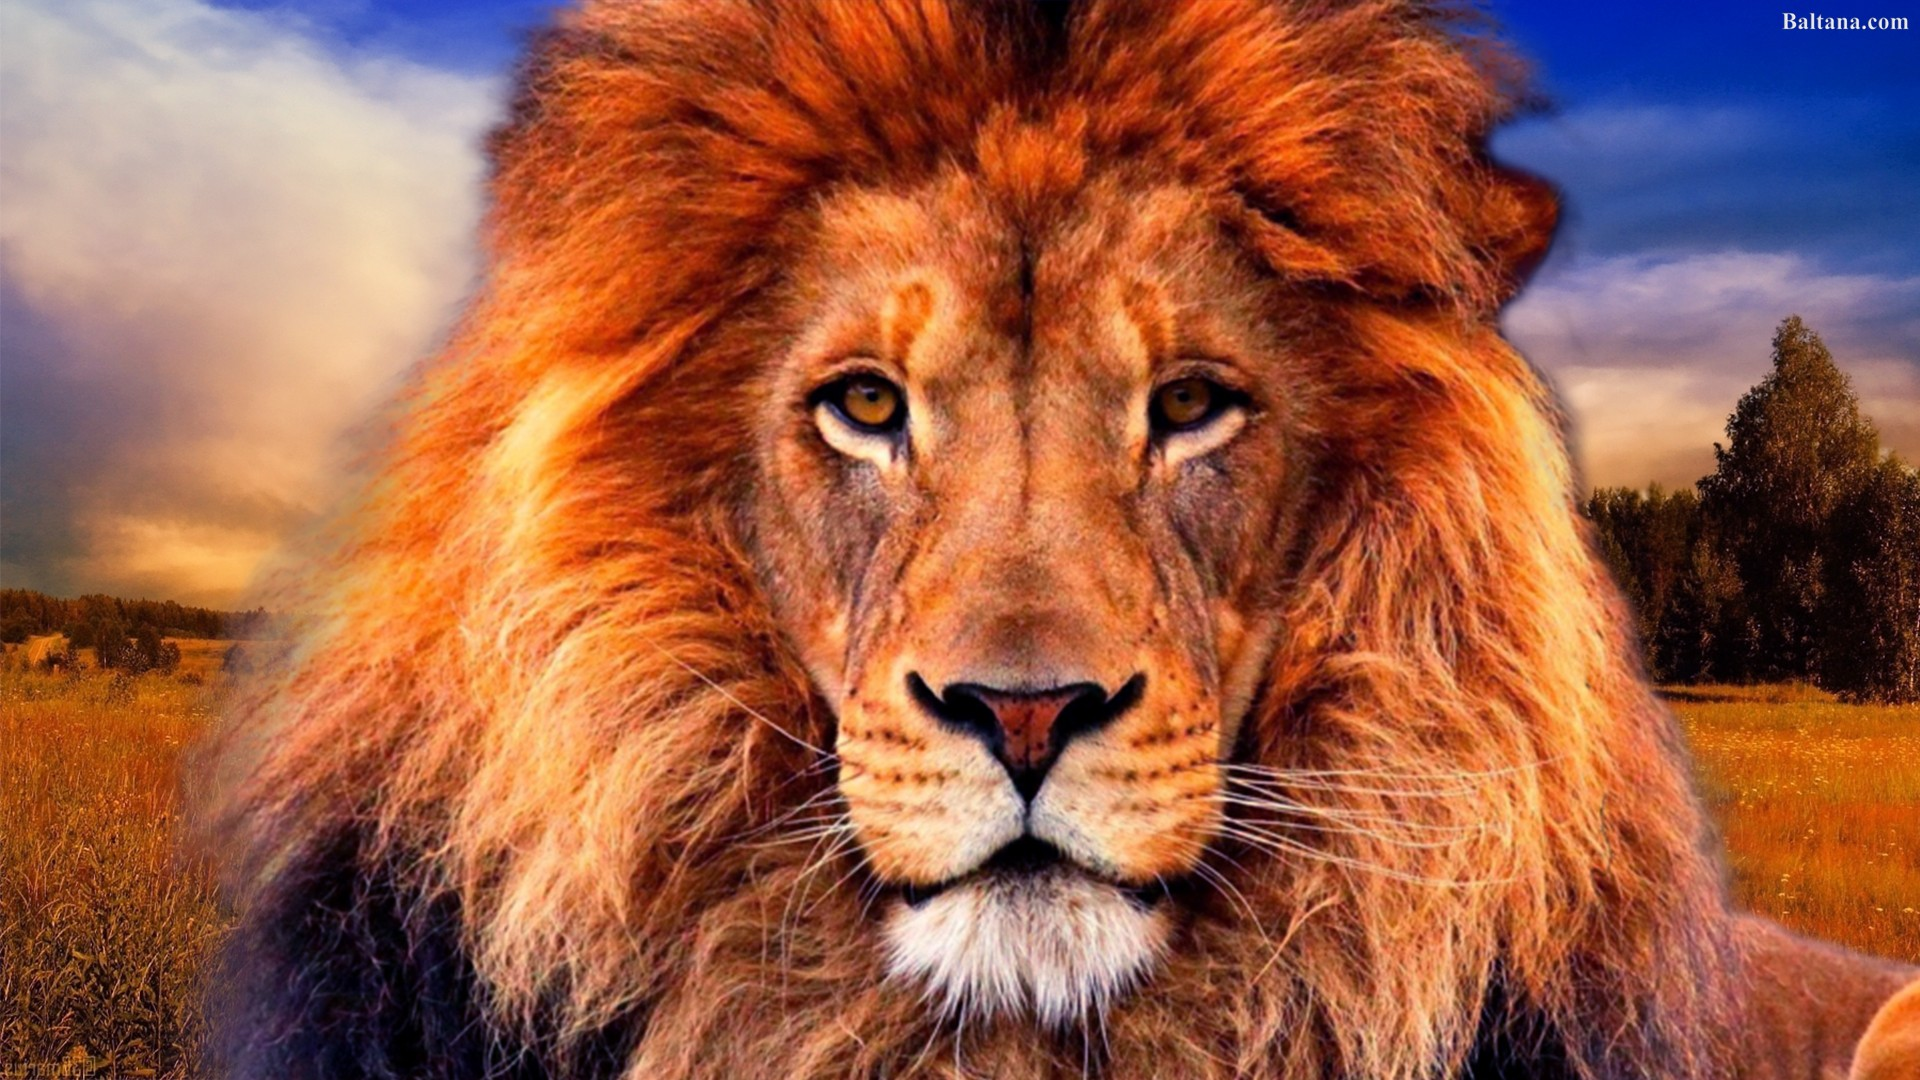 Lion Wallpapers HD Backgrounds Images Pics Photos Download 1920x1080